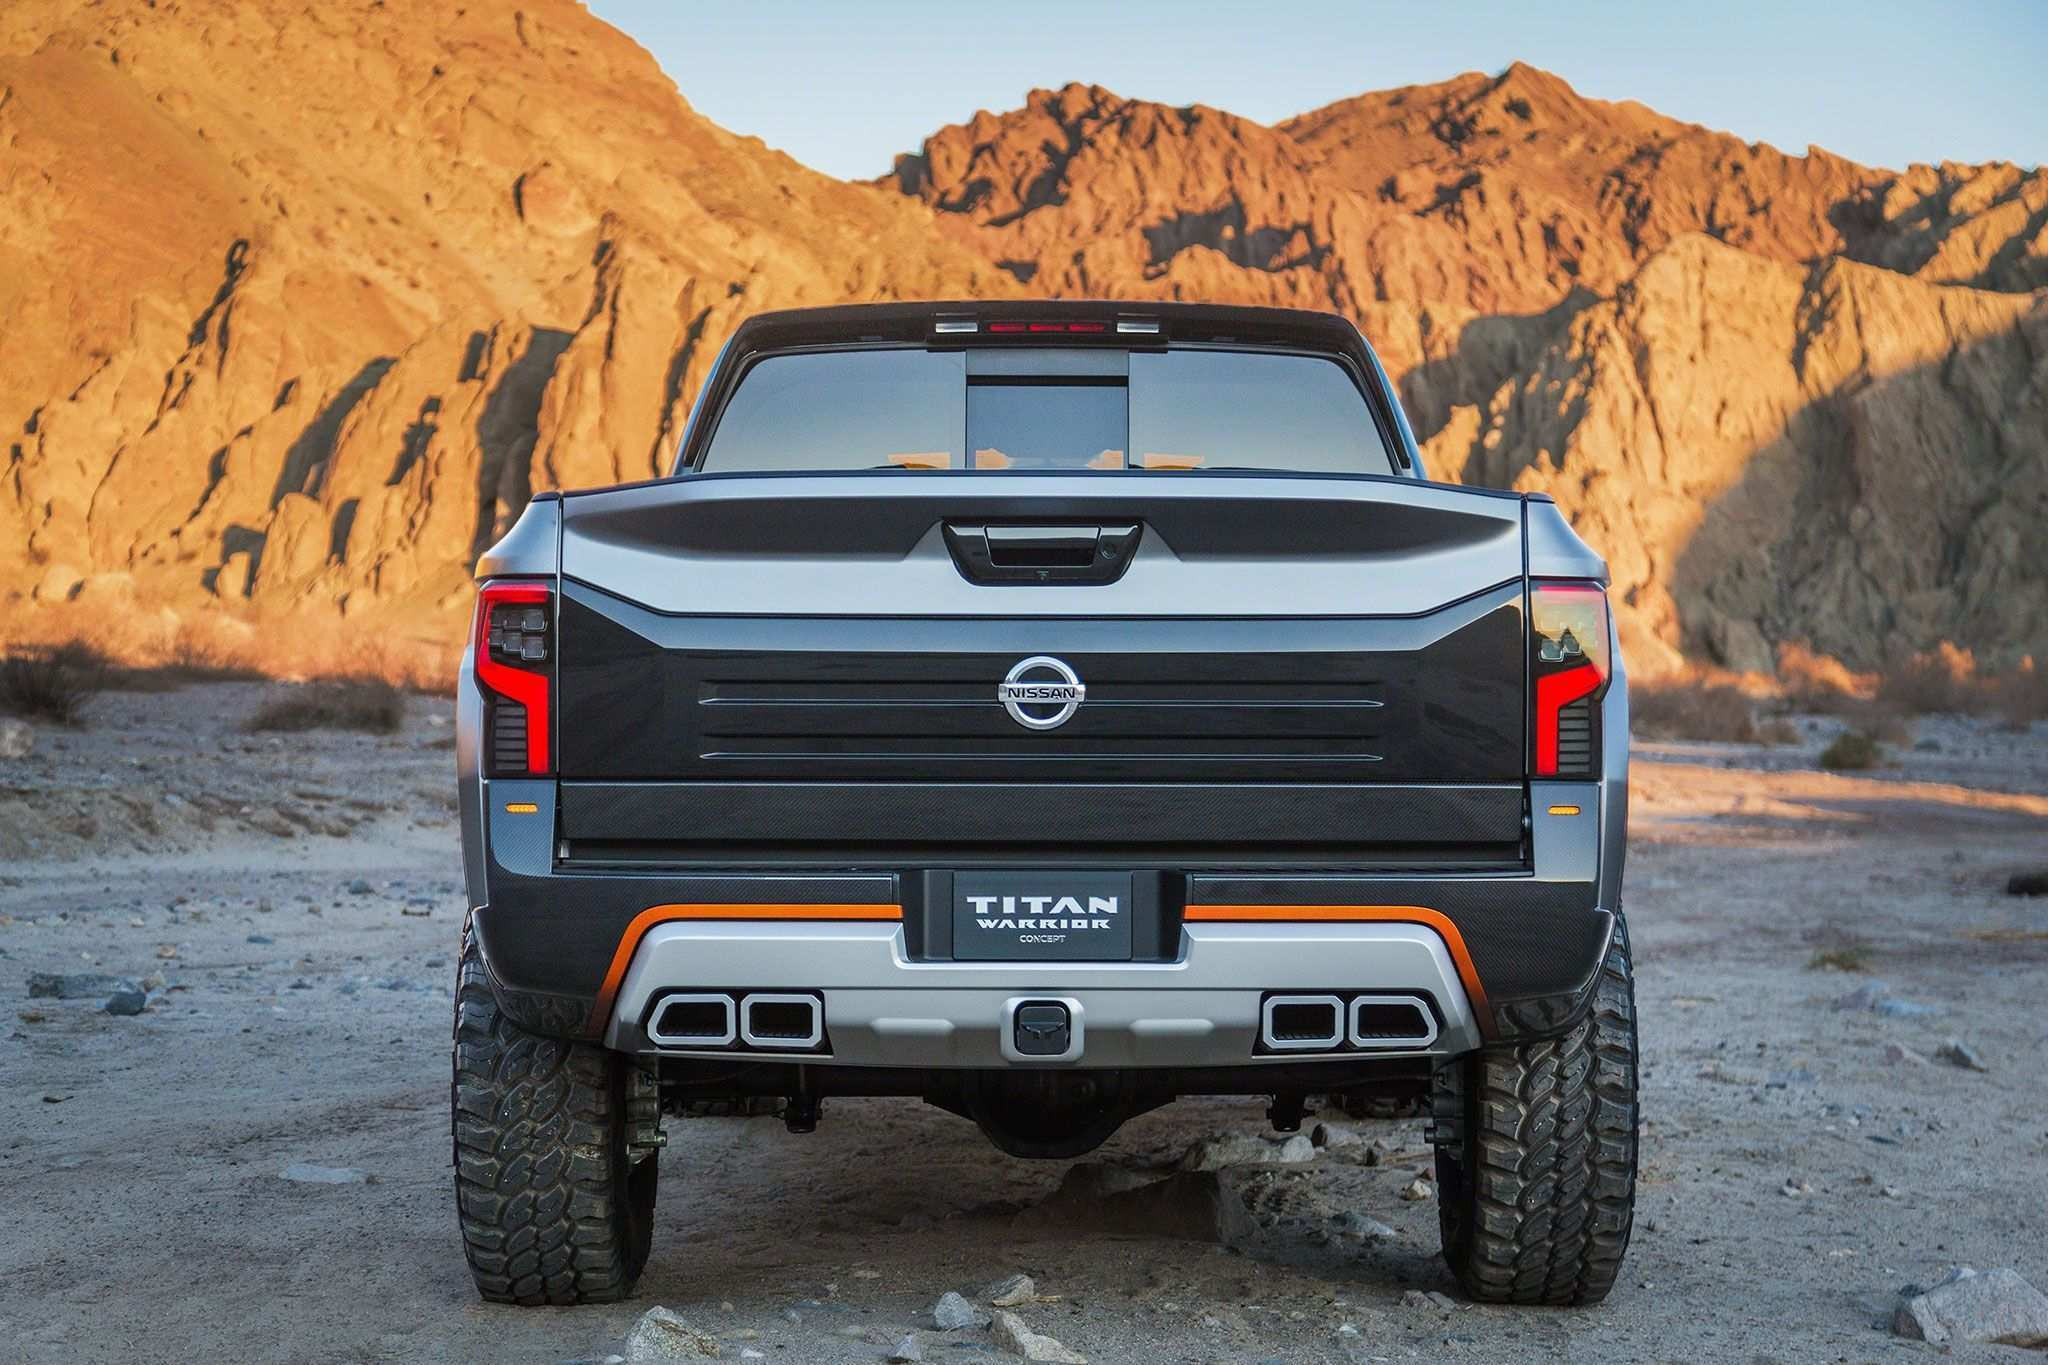 25 Great 2020 Nissan Titan New Concept Interior with 2020 Nissan Titan New Concept